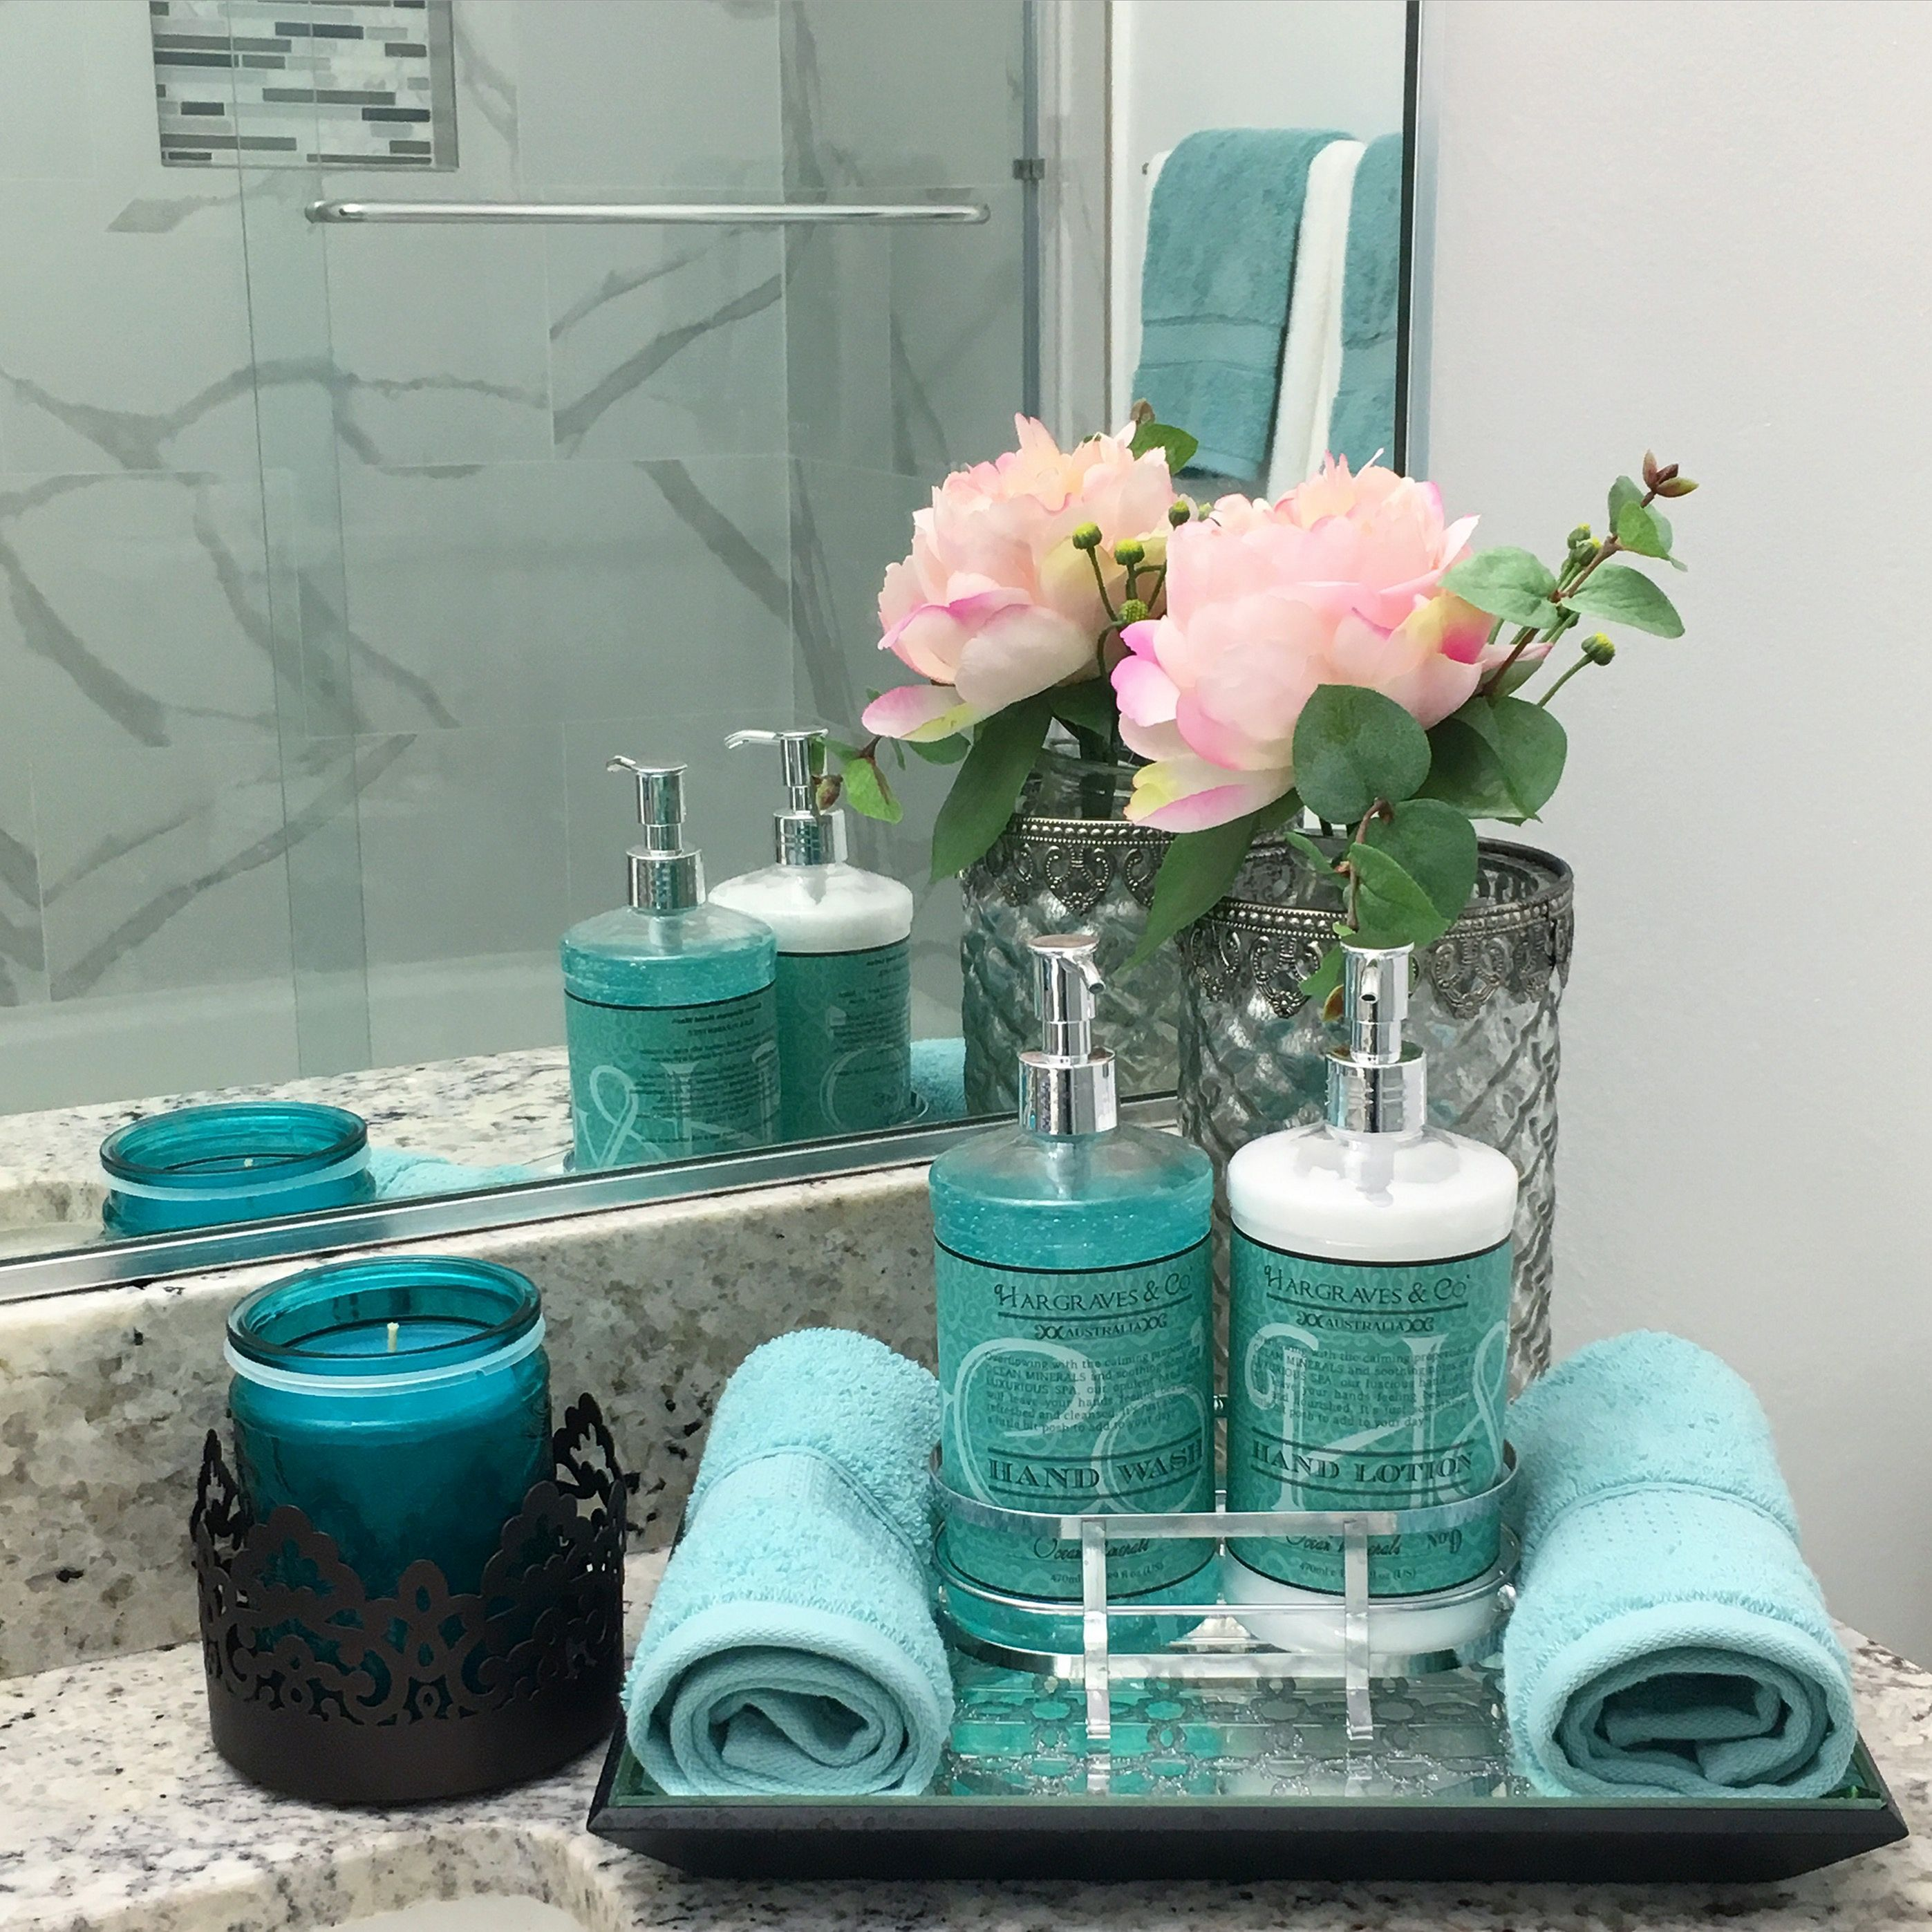 Top 9 Wonderful Small Bathroom Decorating Ideas That People Must Have It